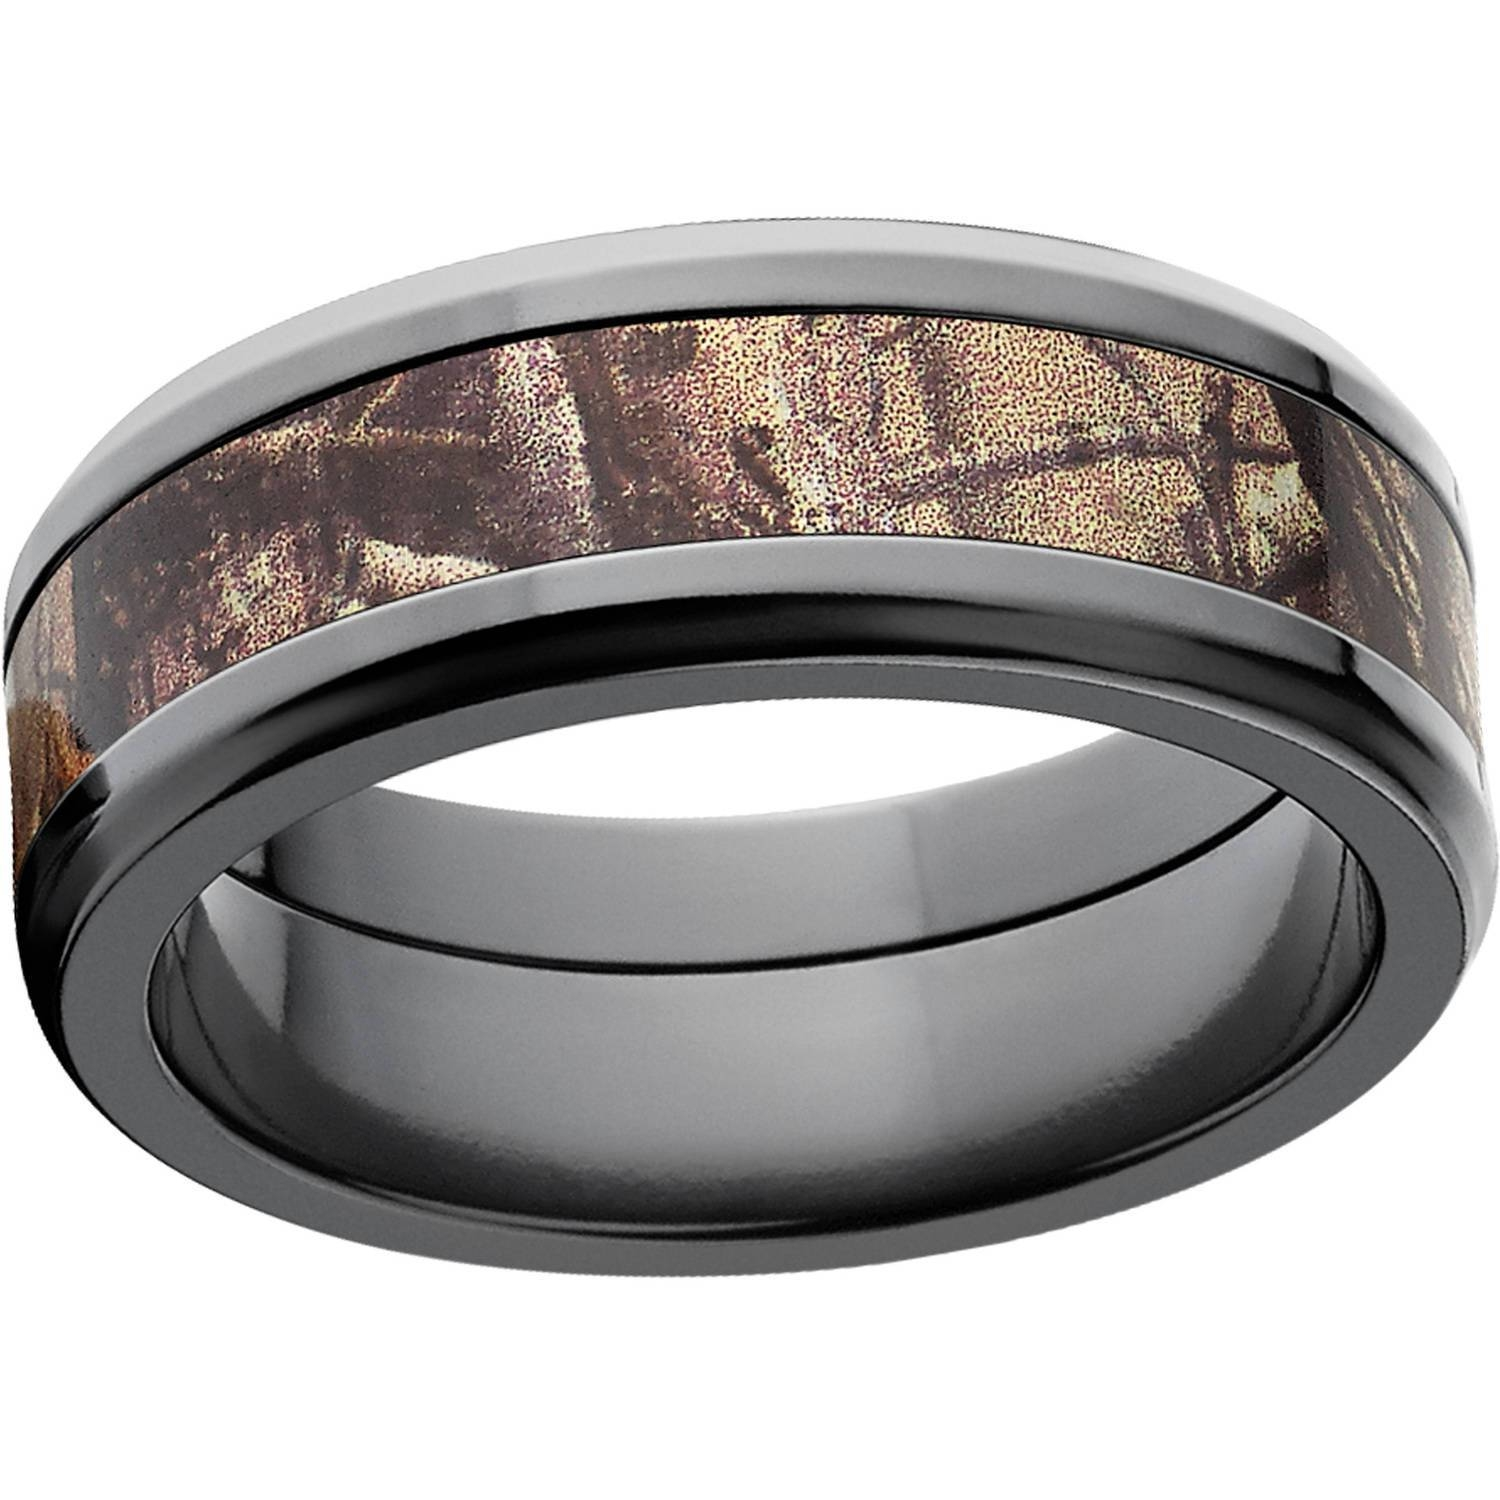 Realtree Ap Men's Camo 8mm Black Zirconium Wedding Band – Walmart Intended For Men's Hunting Wedding Bands (View 9 of 15)